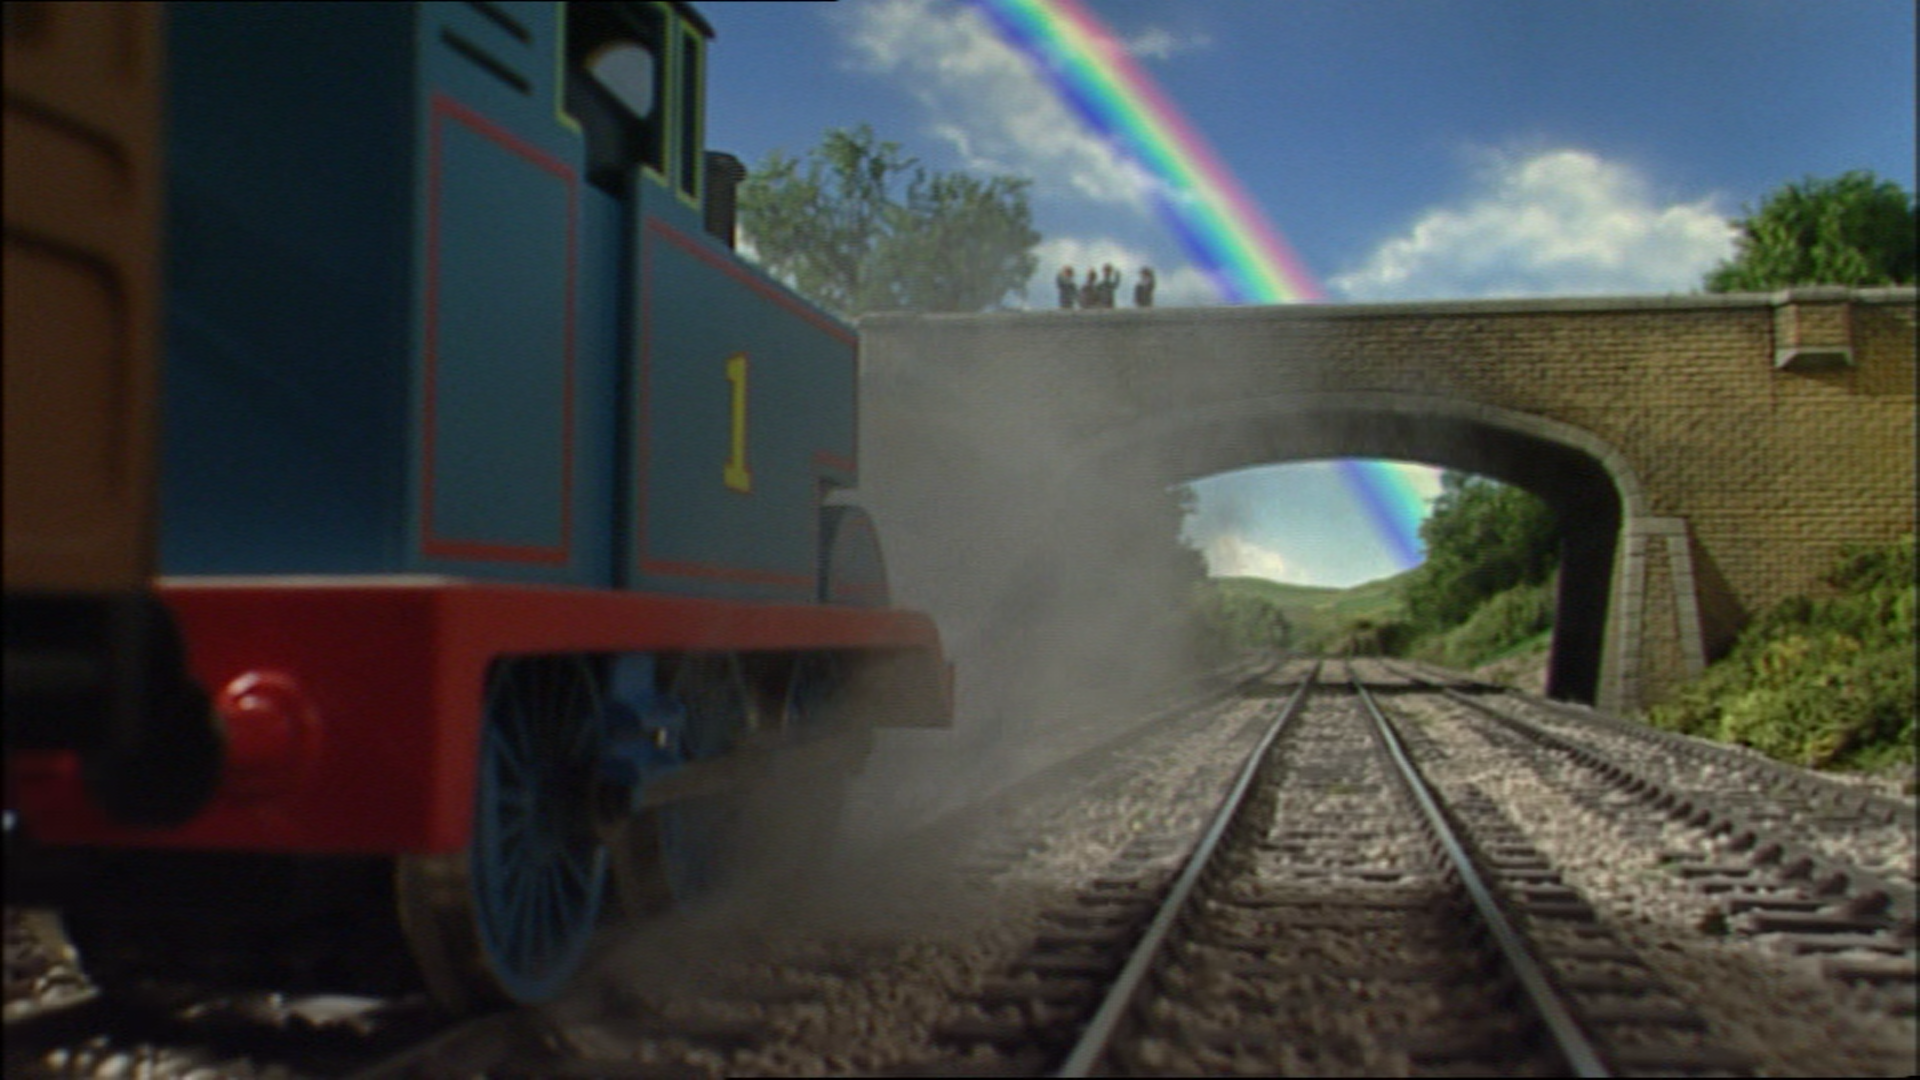 File:ThomasandtheRainbow34.png